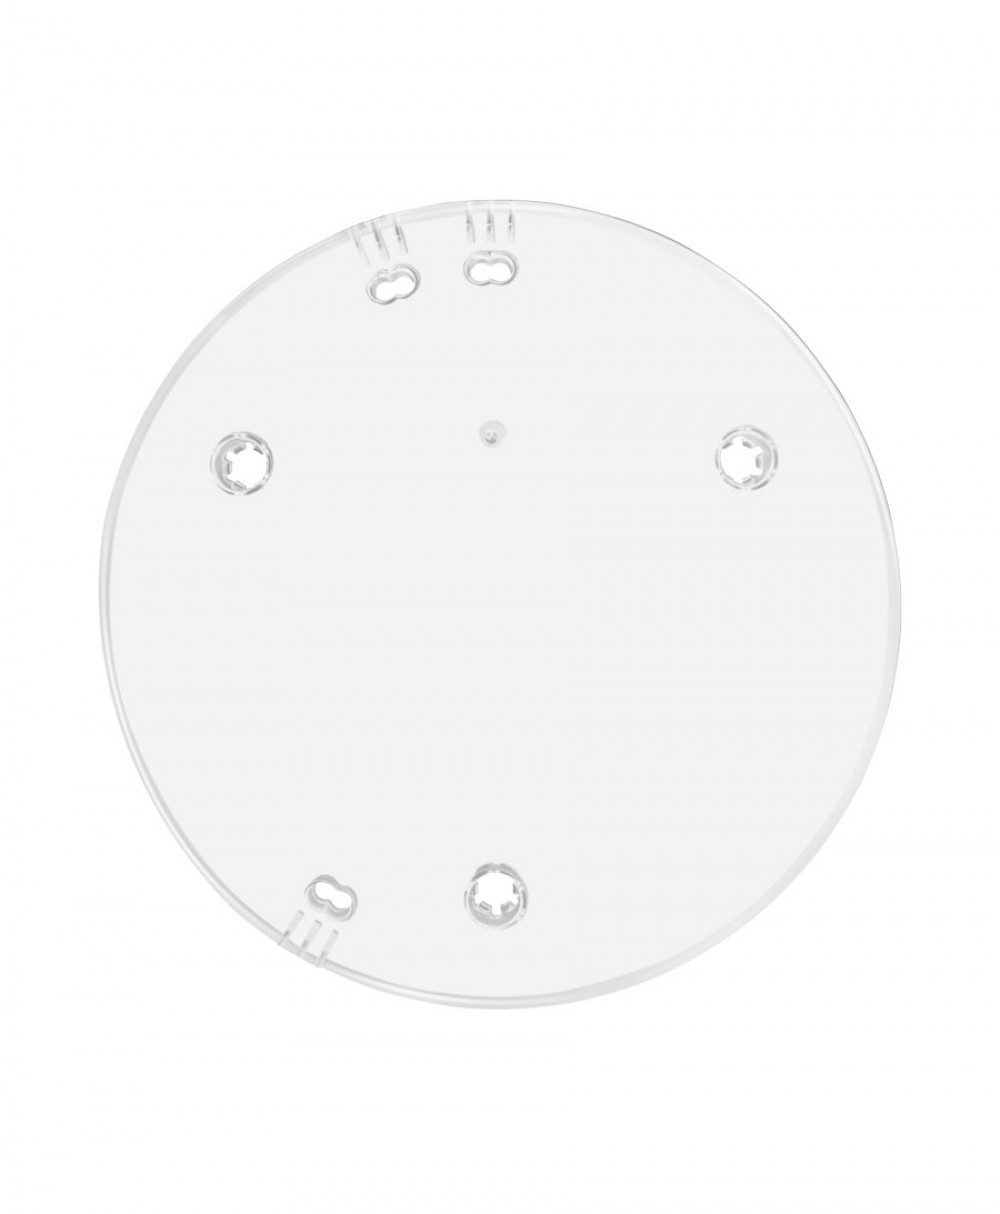 PrevaLED Flat Touch protection, PL-FLTP 335 G2